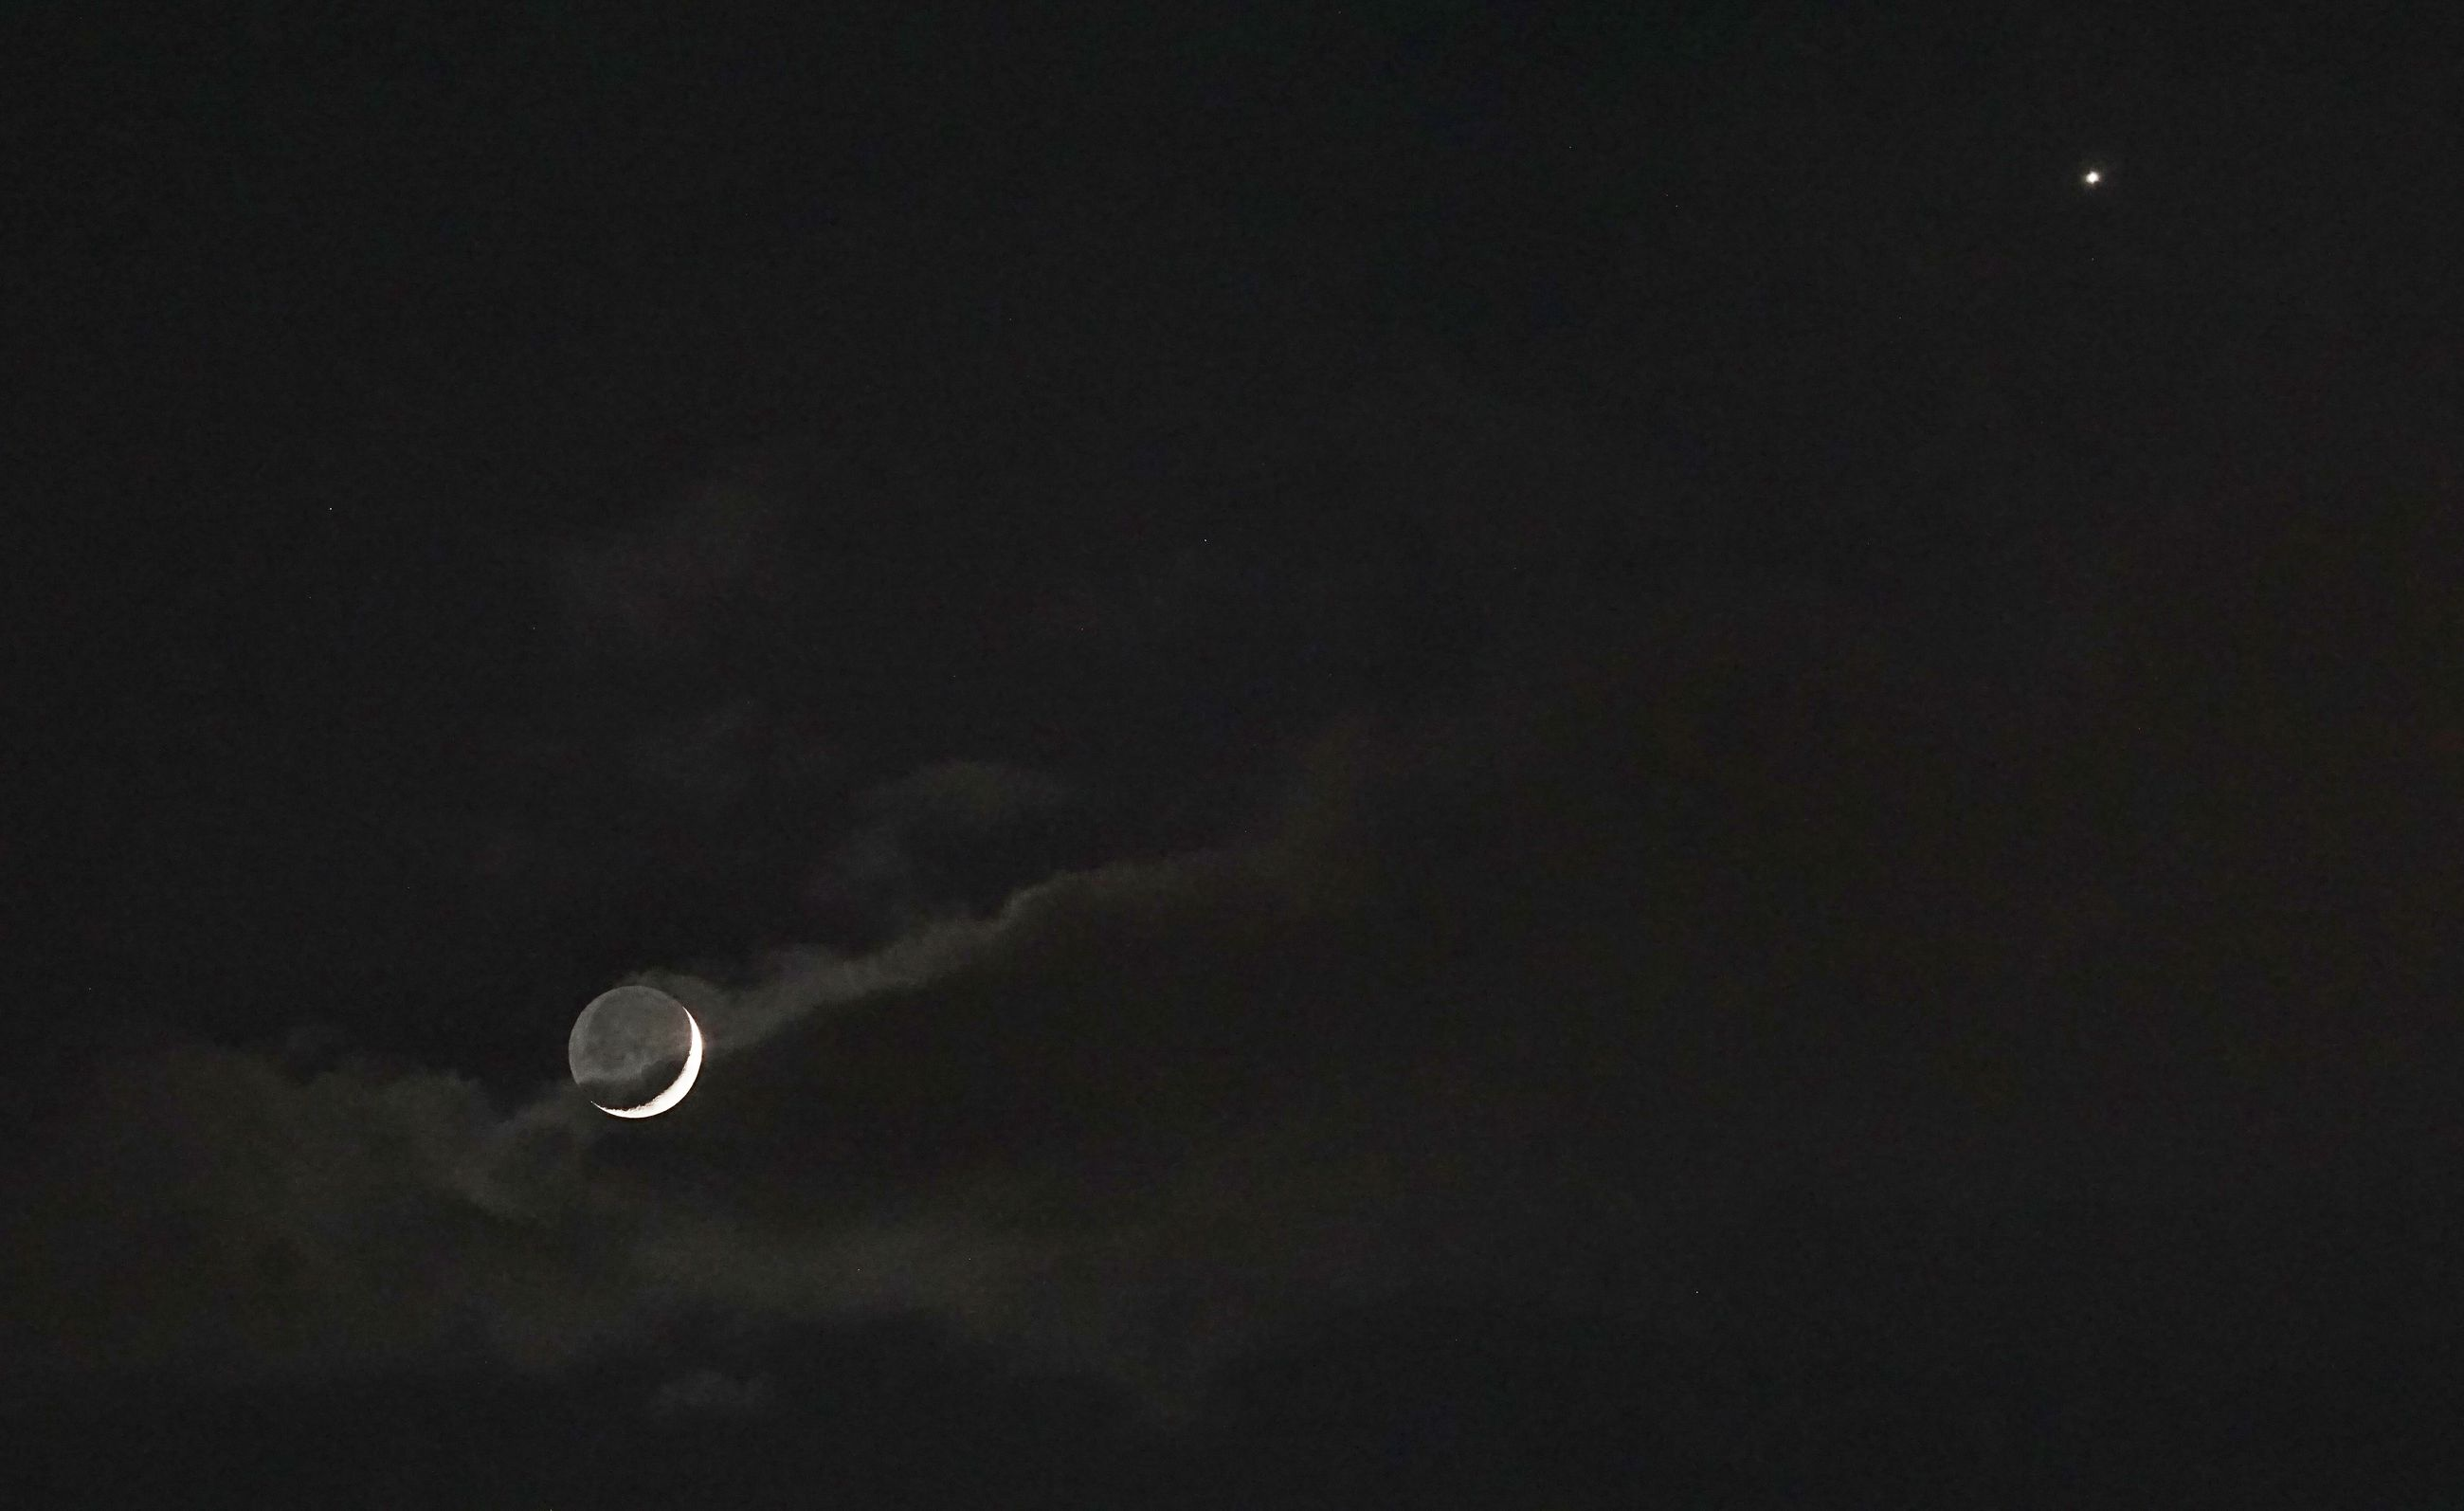 sky, moon, night, beauty in nature, copy space, scenics - nature, low angle view, planetary moon, astronomy, space, tranquility, nature, no people, cloud - sky, tranquil scene, crescent, outdoors, dark, space exploration, discovery, eclipse, space and astronomy